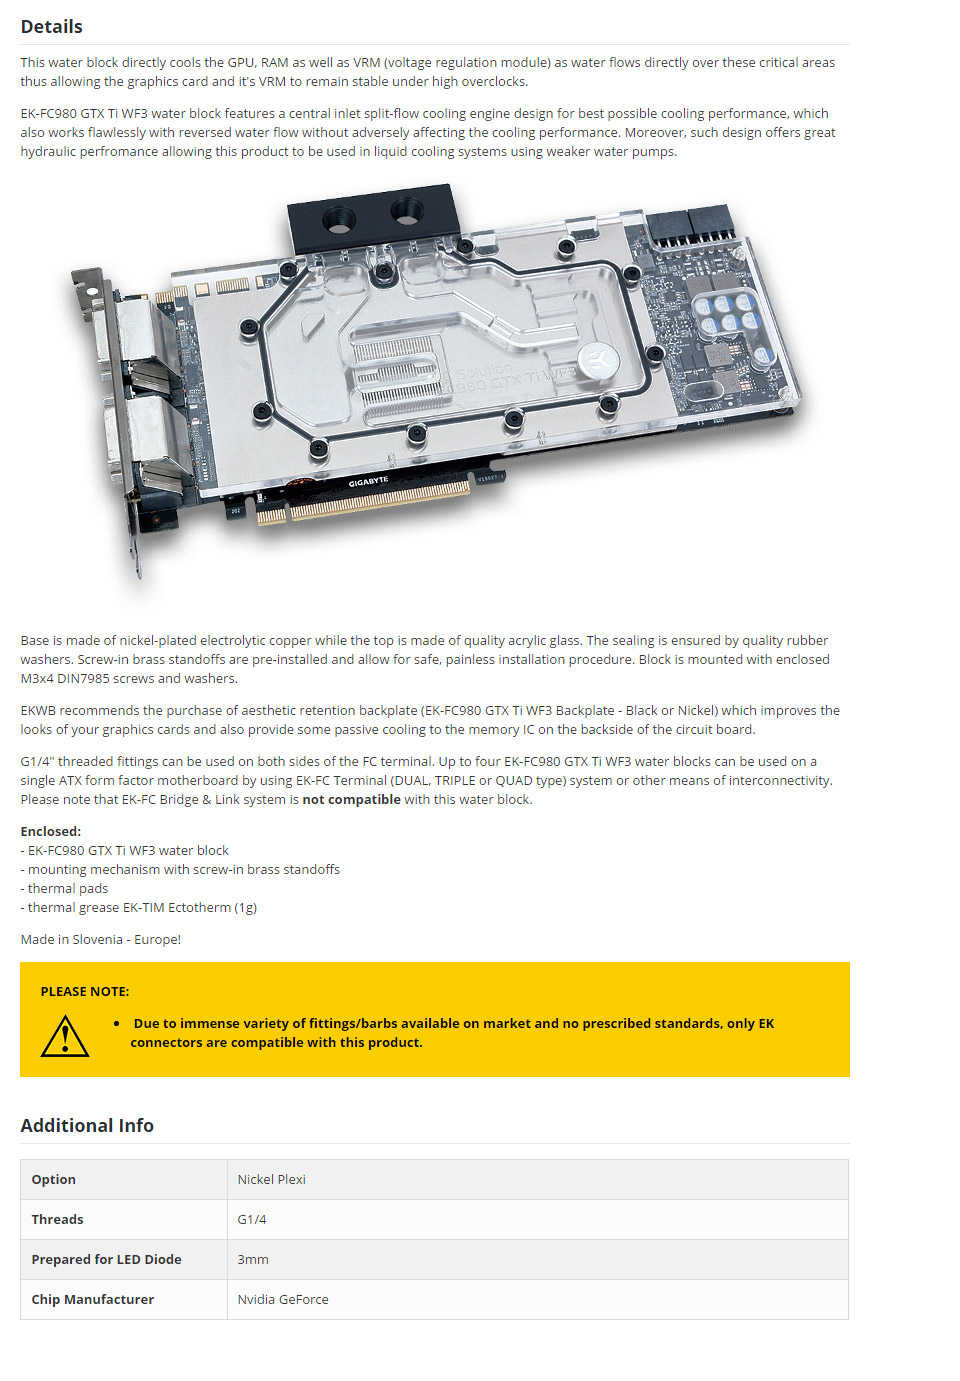 Ek Full Cover Vga Block Fc980 Gtx Ti Wf3 Nickel 3831109830918 Circuit Diagram Furthermore Basic Hydraulic Schematic In It Will Allow The Graphics Card To Remain Stable Under High Overclocking And Demanding Settings While Providing Passive Cooling For Backside Of